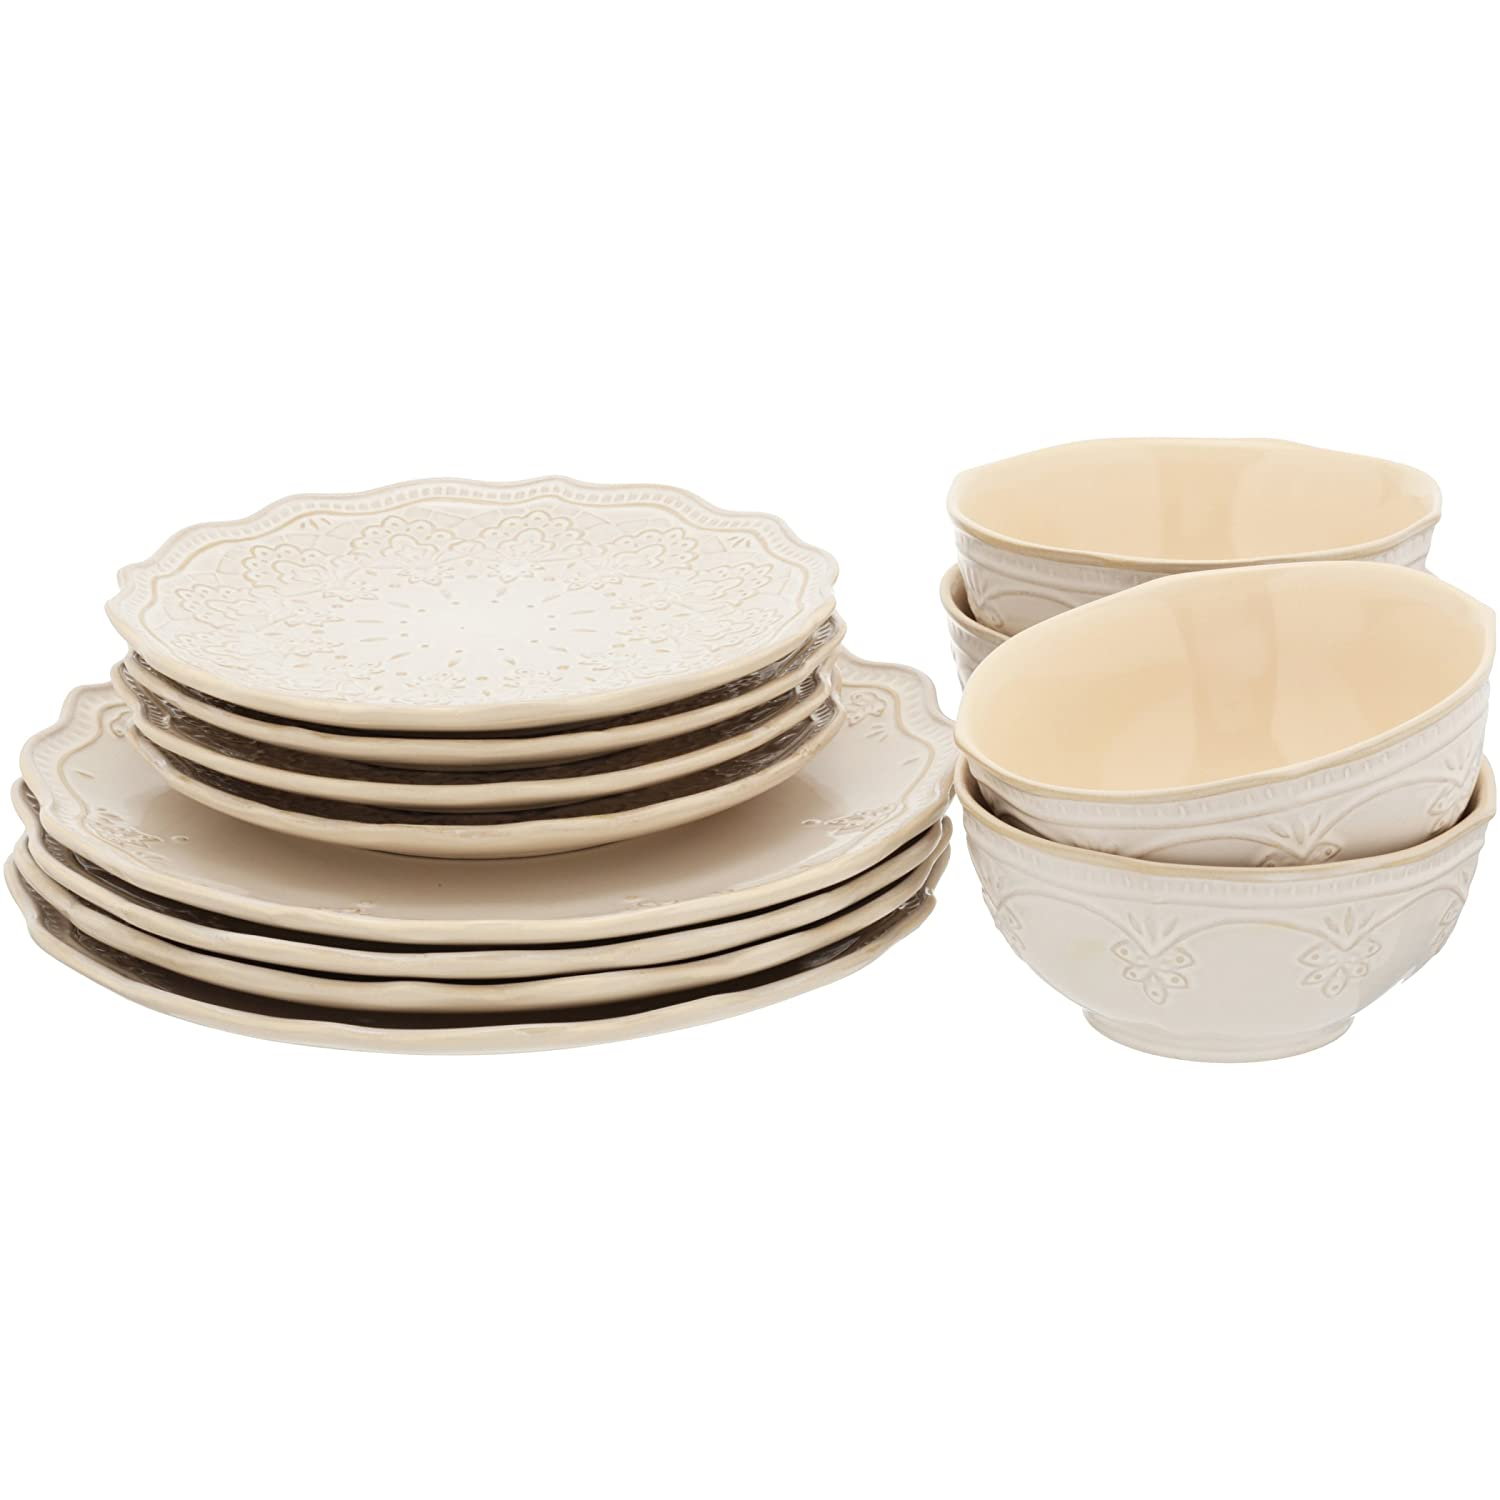 The Pioneer Woman Farmhouse Lace Dinnerware Set, 12-Piece - Linen By The Pioneer Woman 111254.12R